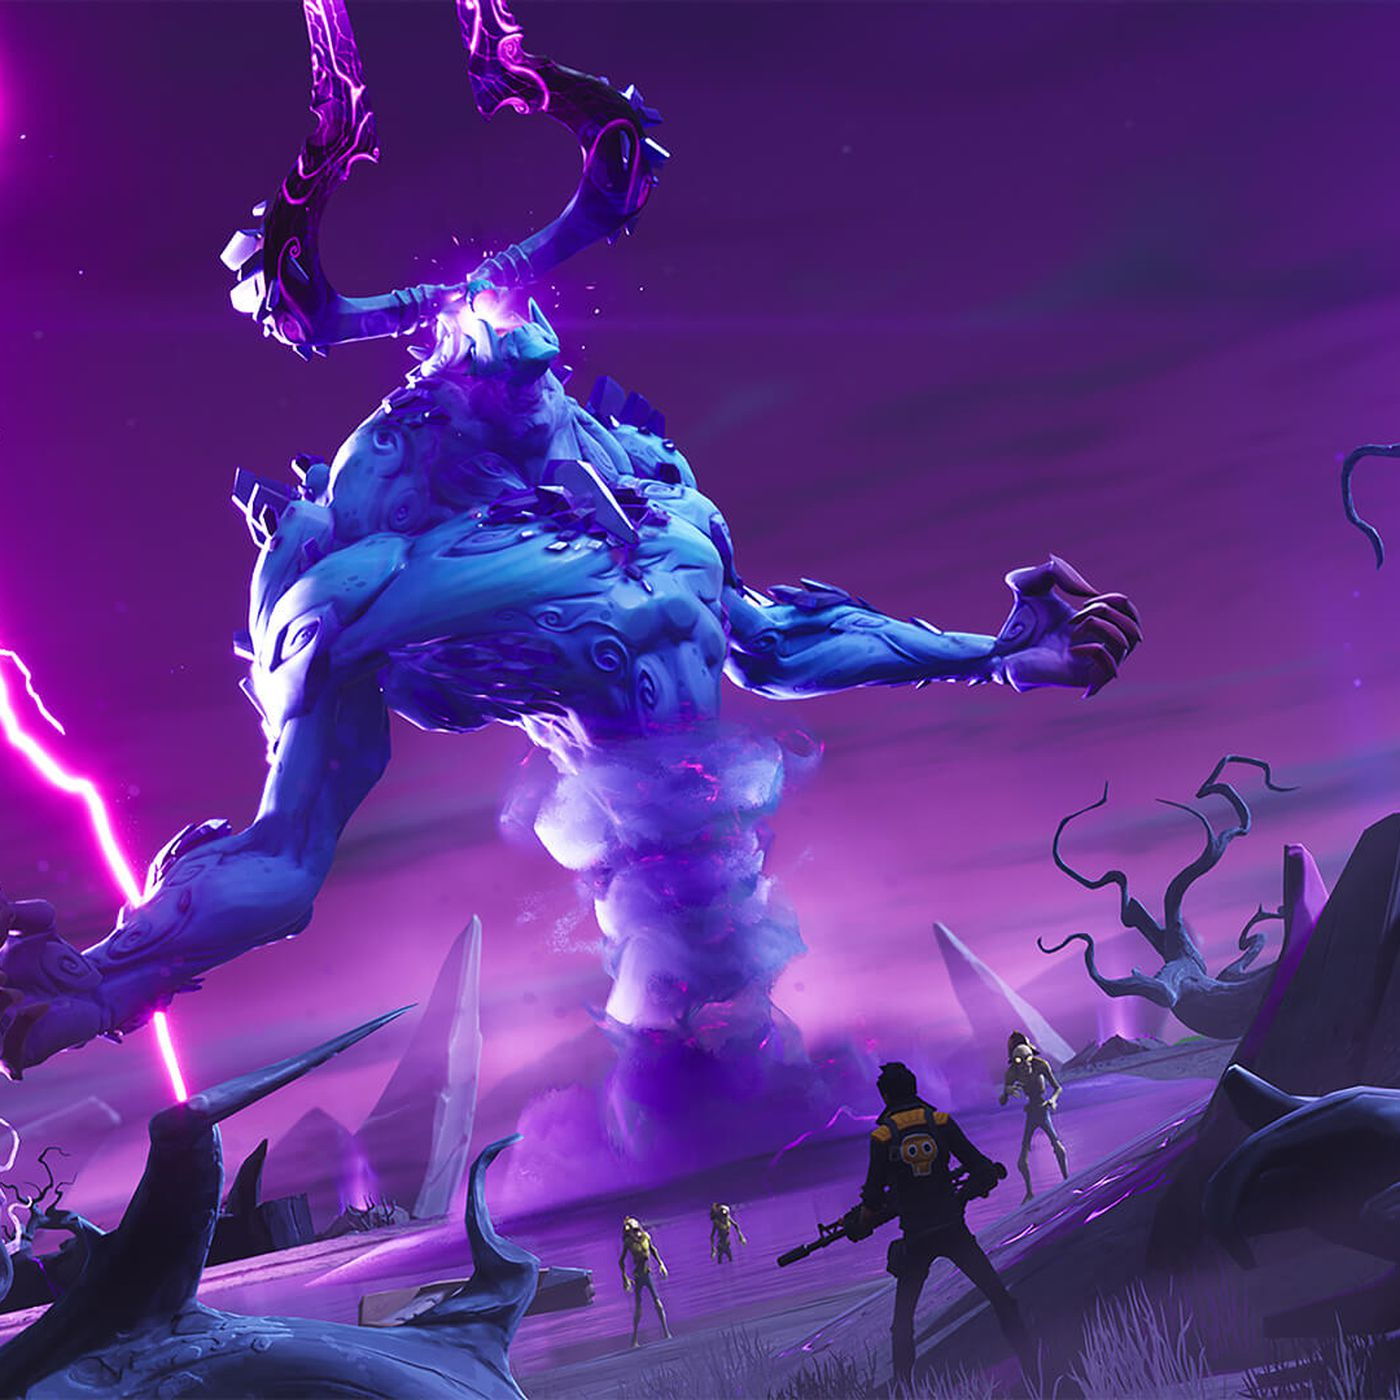 Fortnite Save The World Notendo Switch Fortnite Save The World Is Getting Its Biggest Toughest Boss Later This Year Polygon